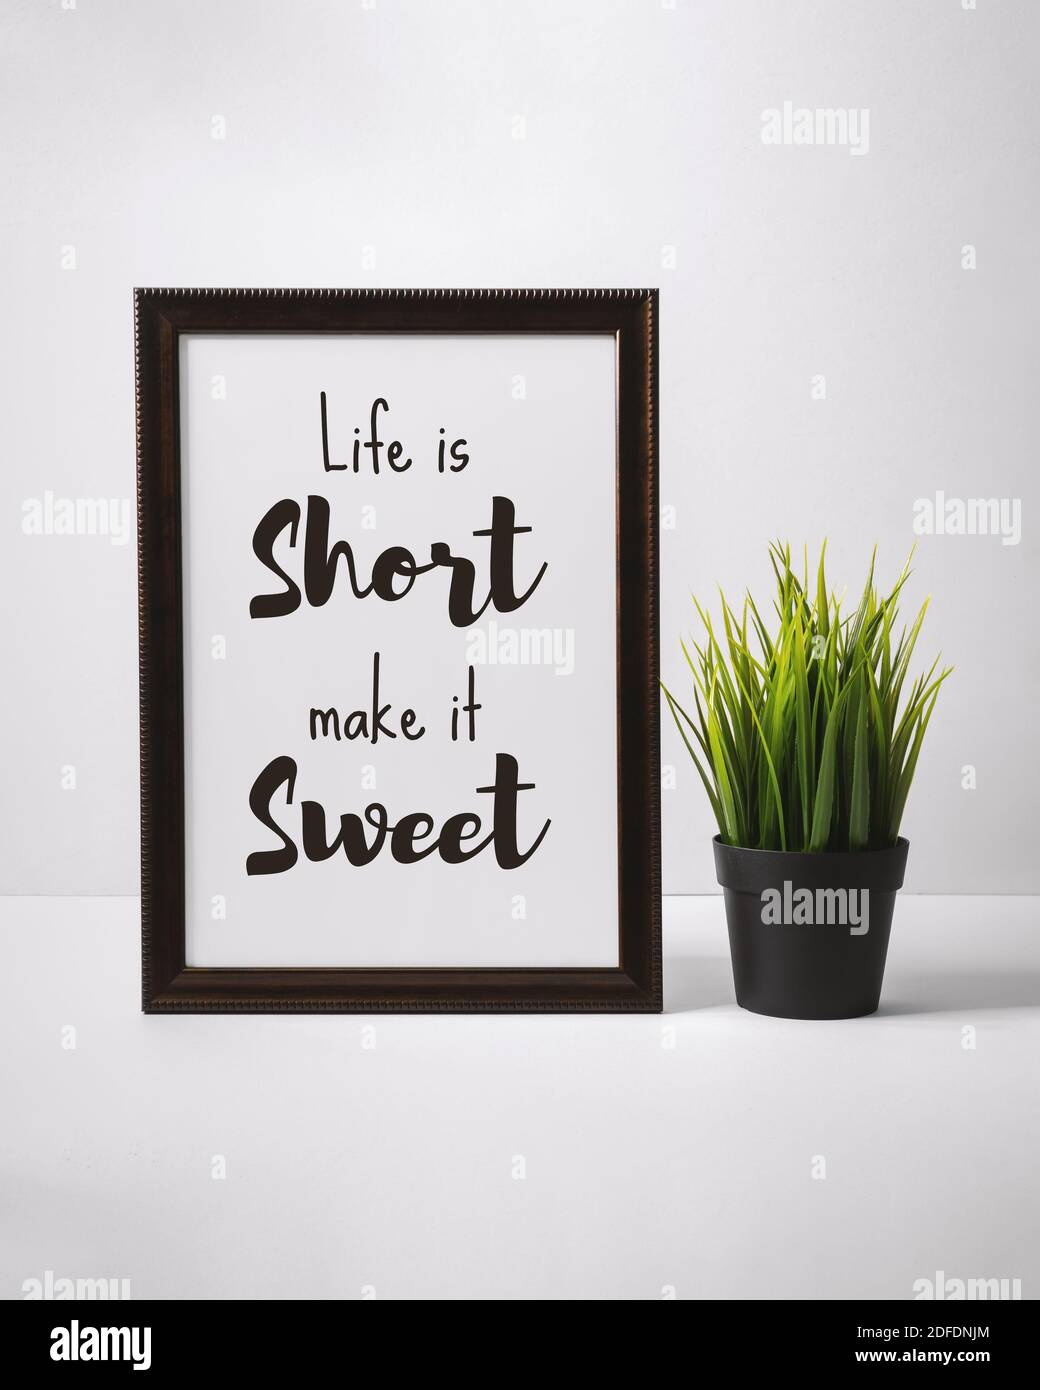 Motivational and Inspirational Quotes. Life is Short Make it Sweet ...